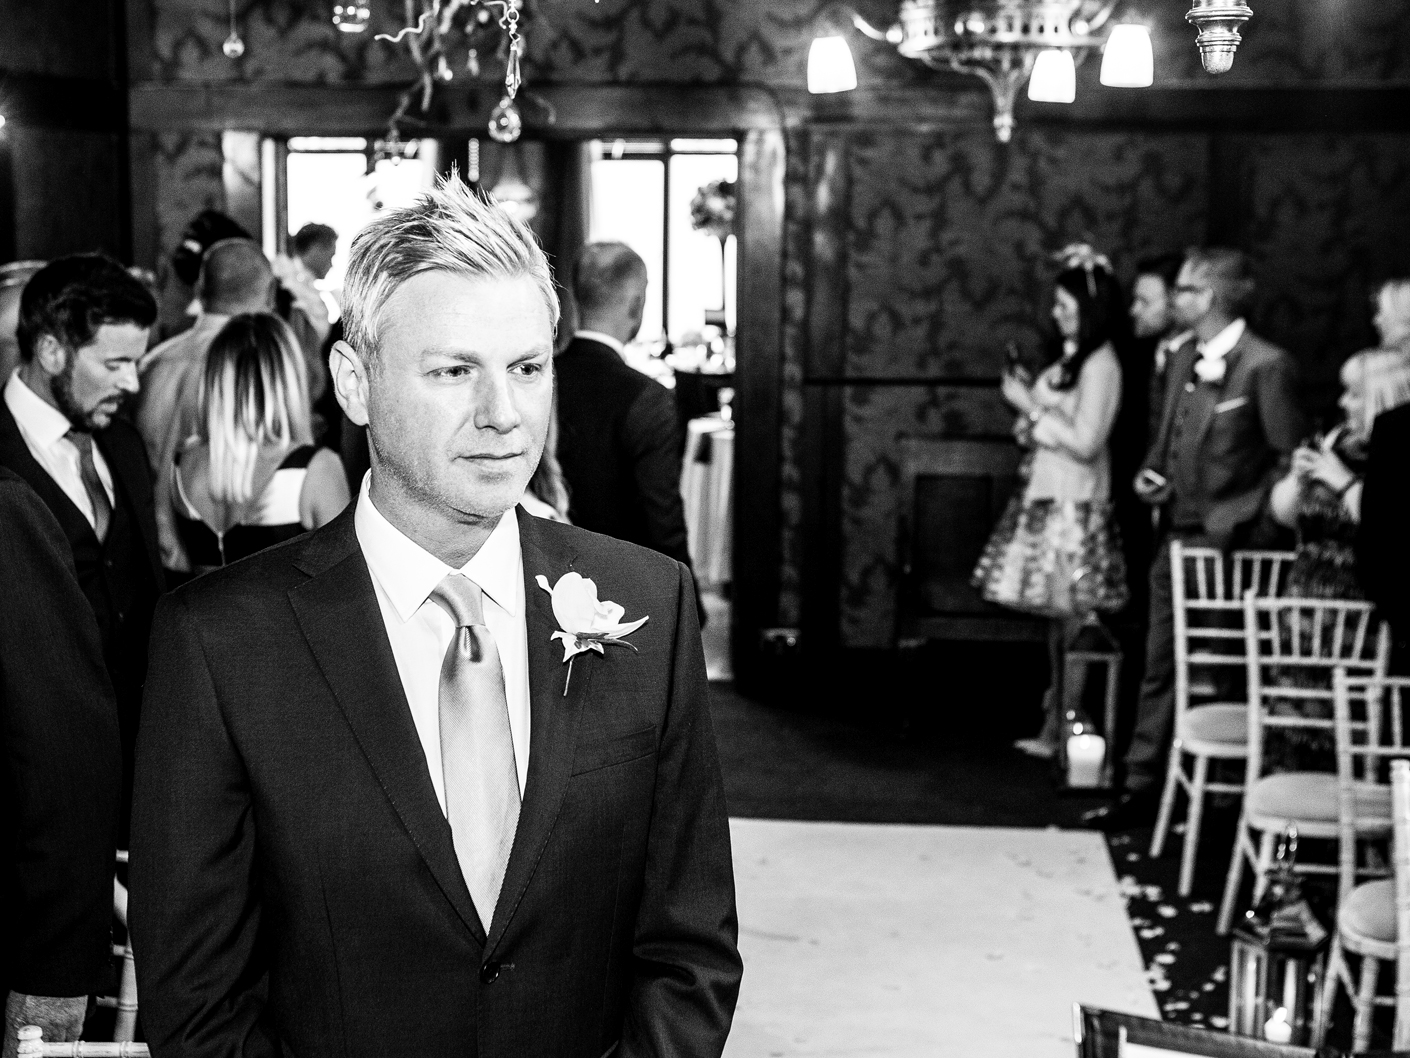 wedding-photography-of-the-groom-at-the-belle-epoque-knutsford-in-cheshire